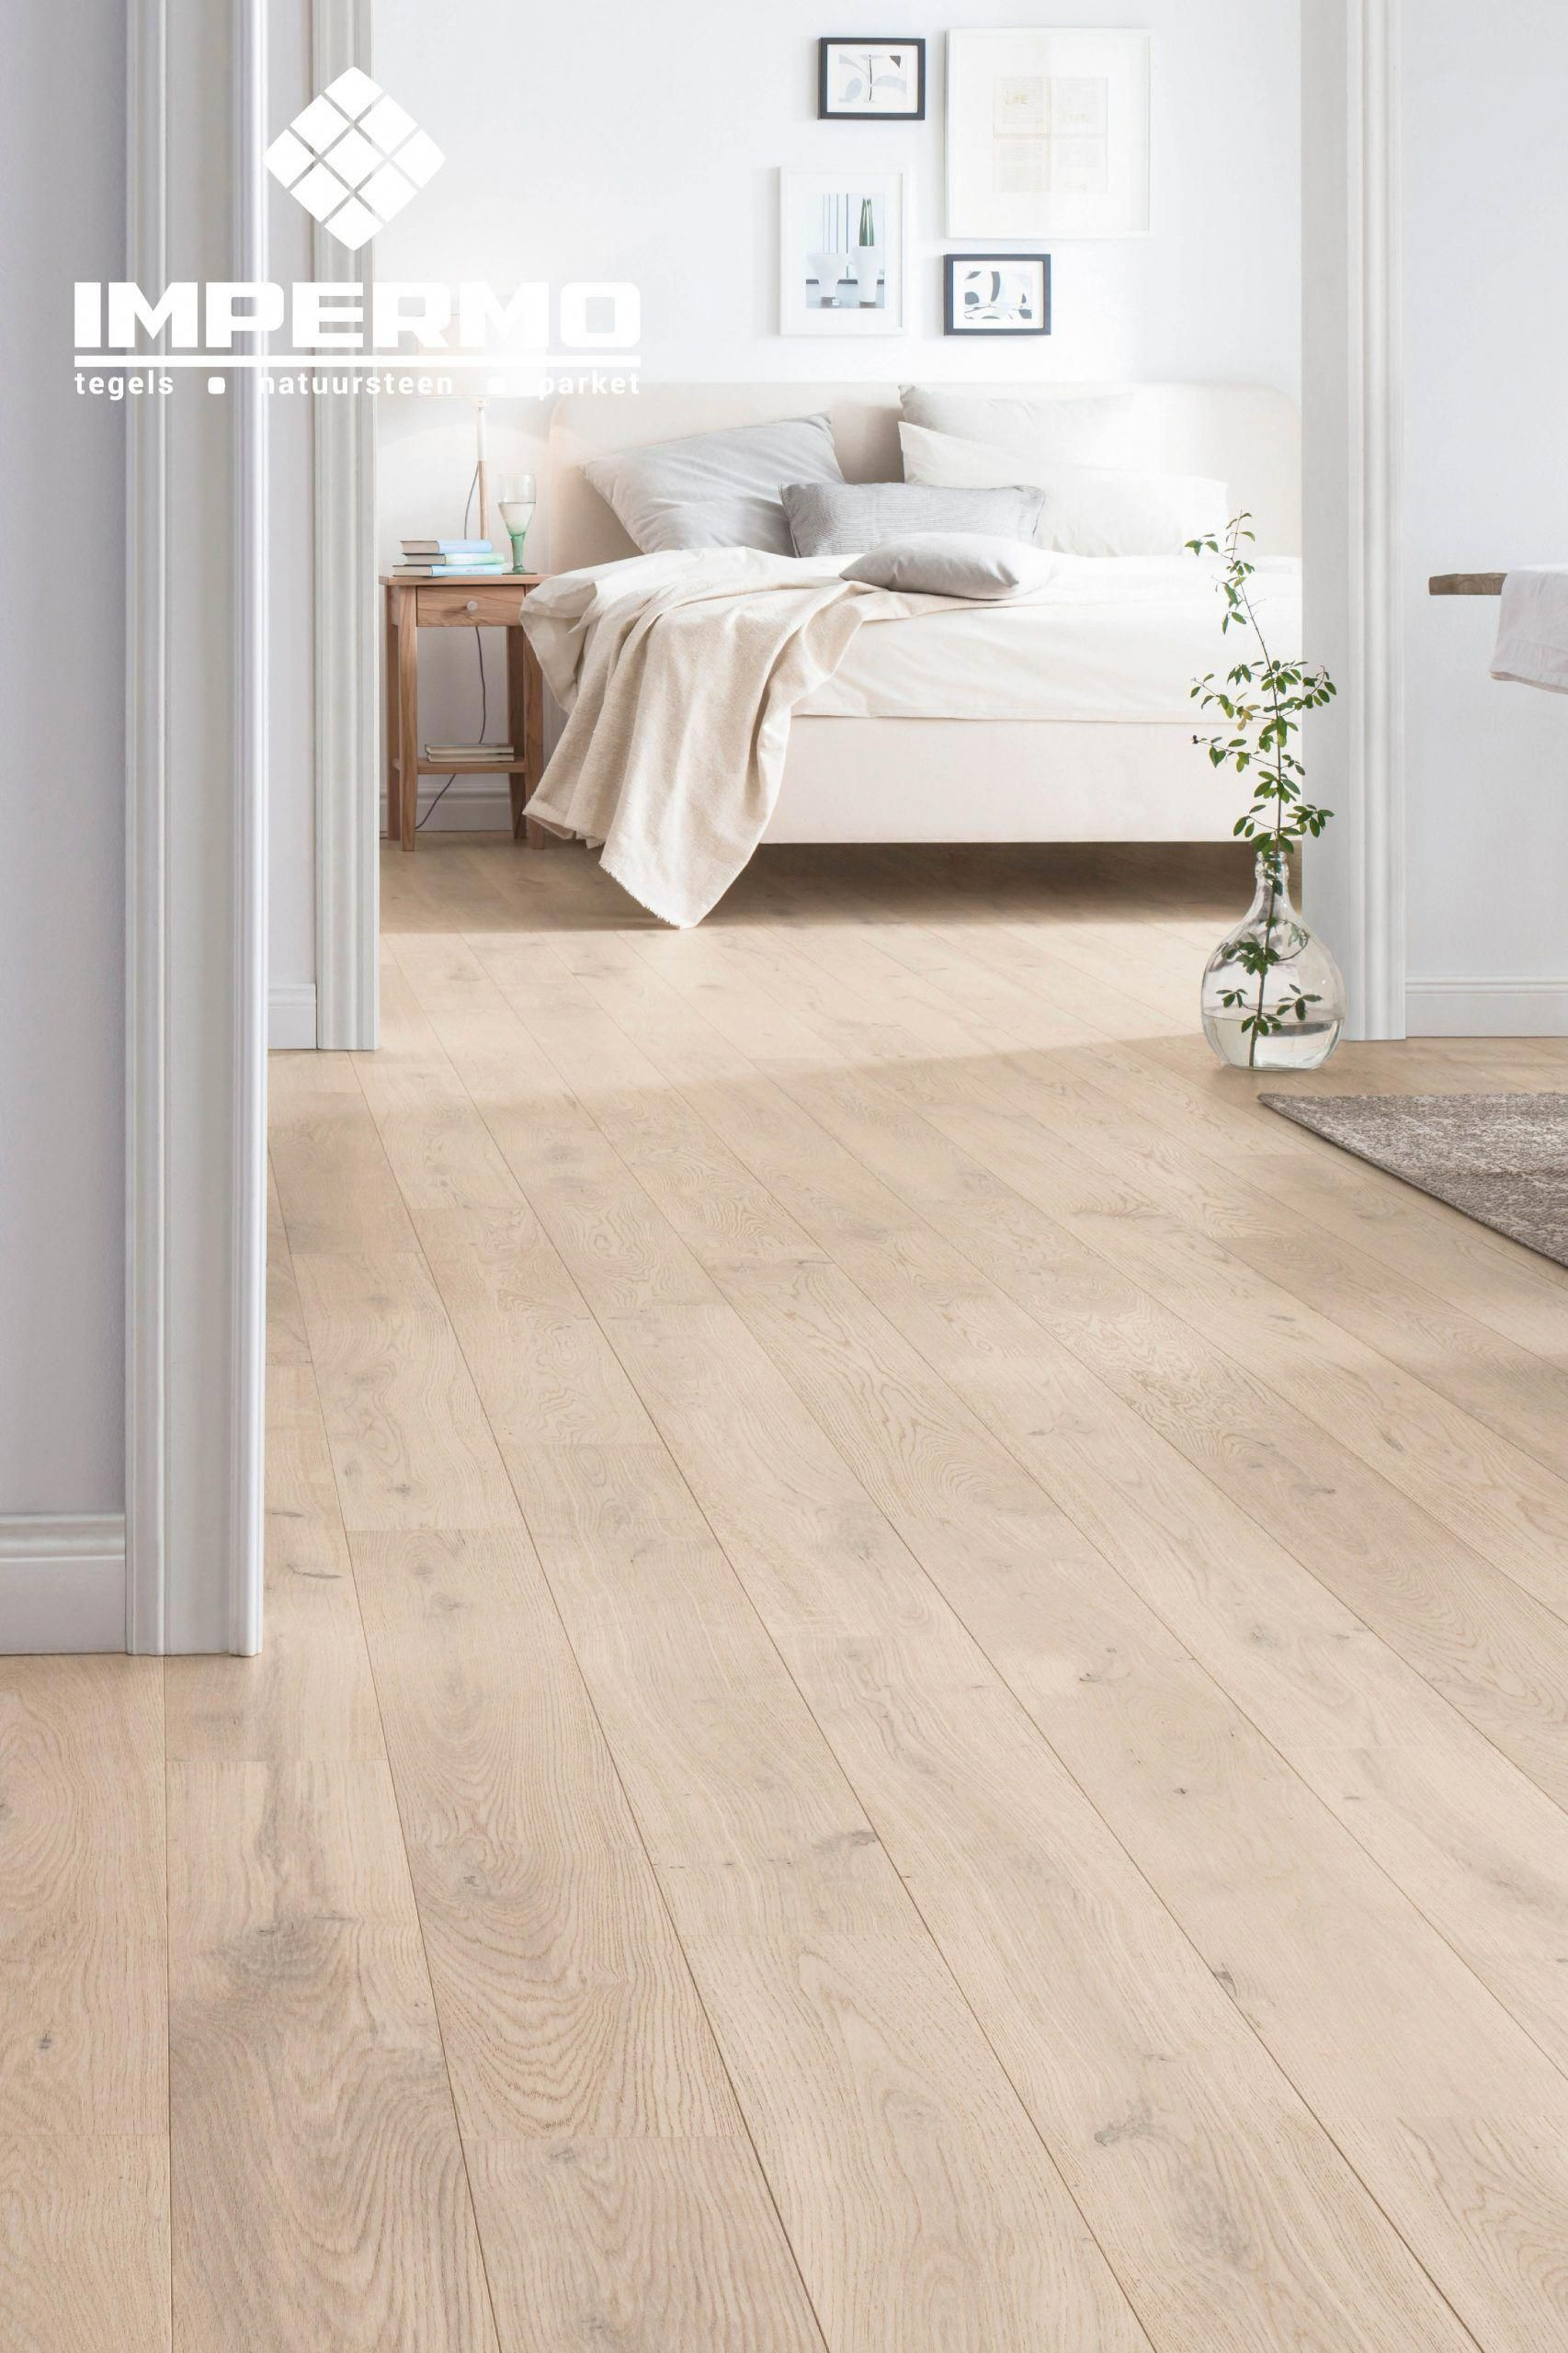 Dazzling wood flooring bedroom - make sure you visit our guide for